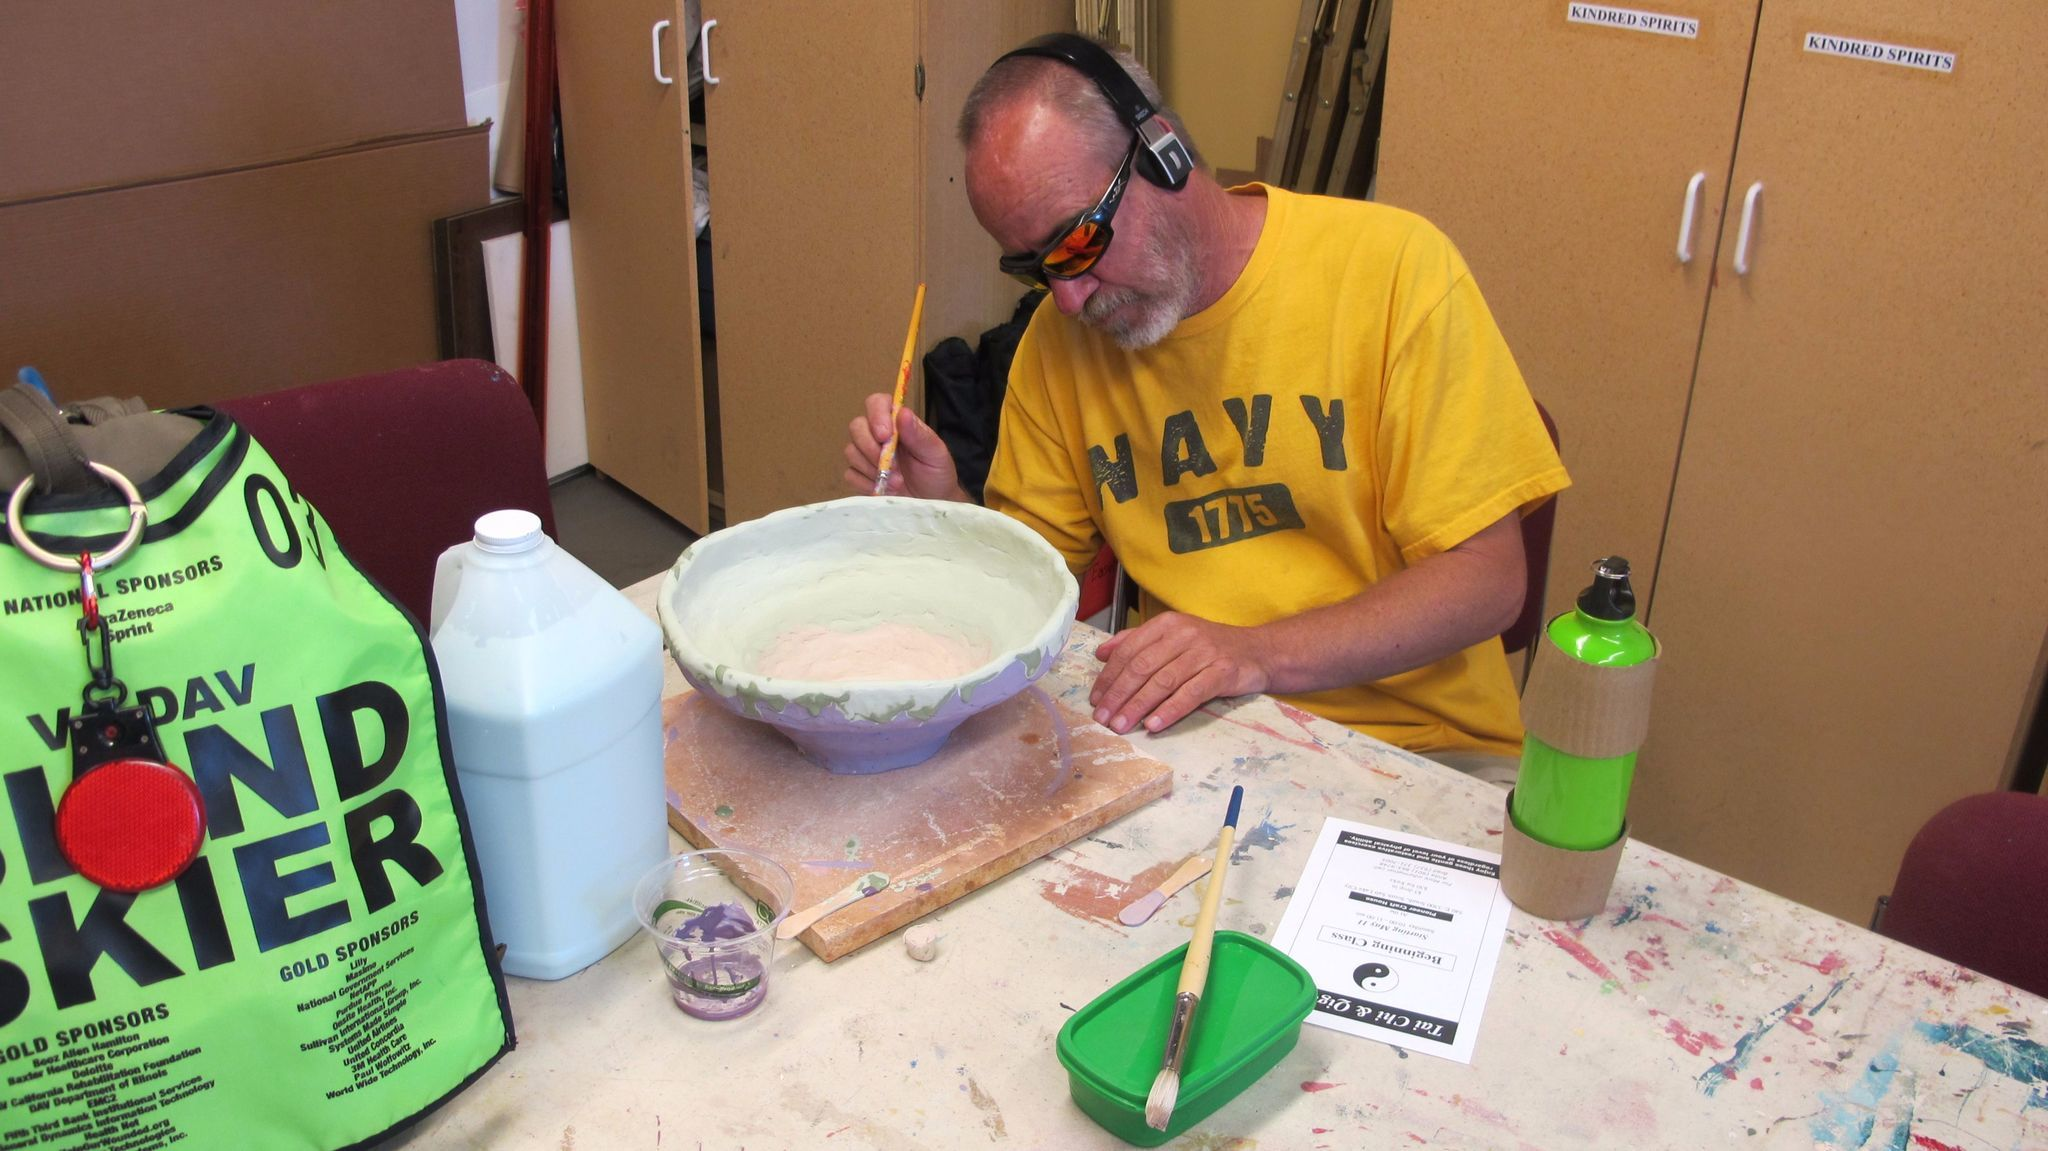 A blind veteran adds glaze to a pot he created in a ceramics sculpture workshop at Art Access in Salt Lake City.